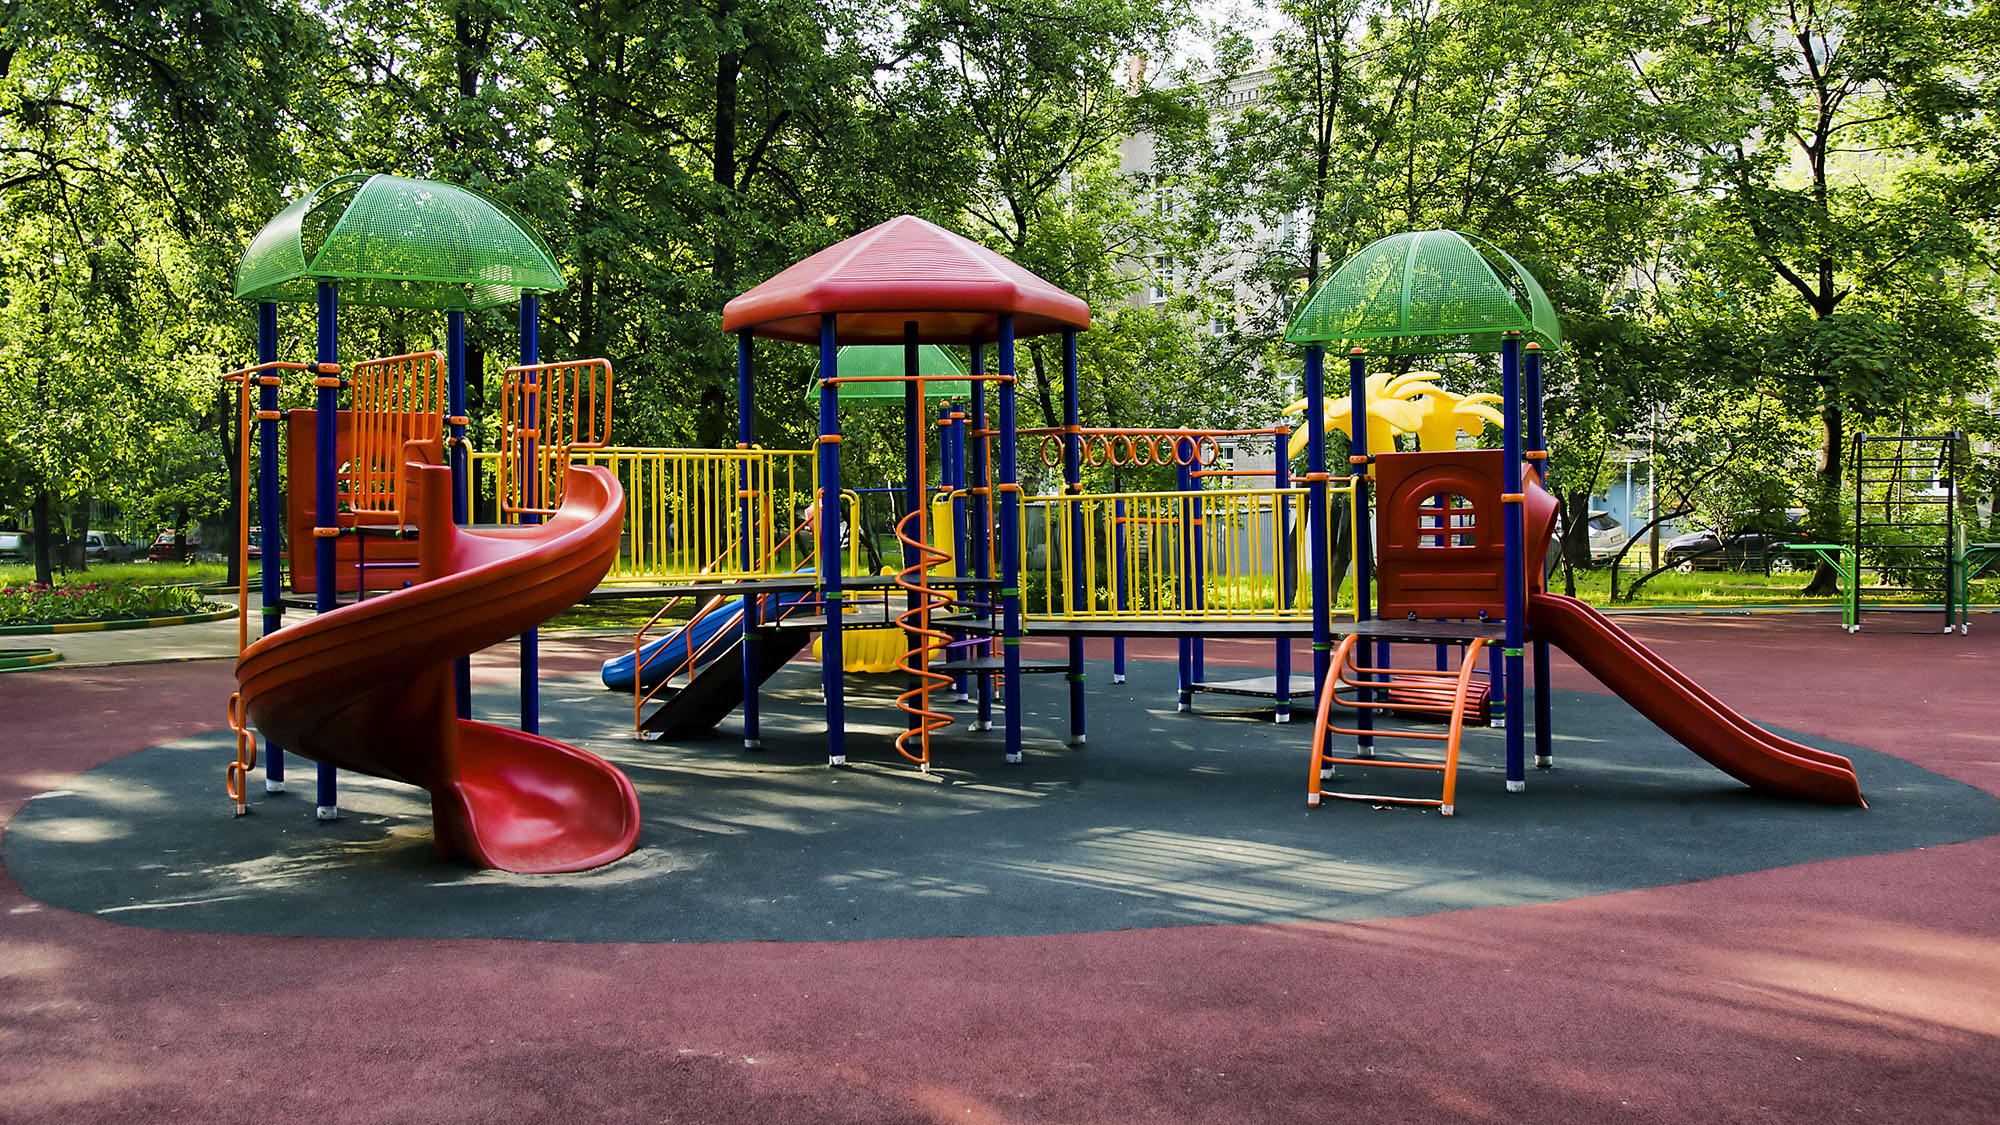 Does fencing playgrounds make them safer or does it encourage lazy parenting?